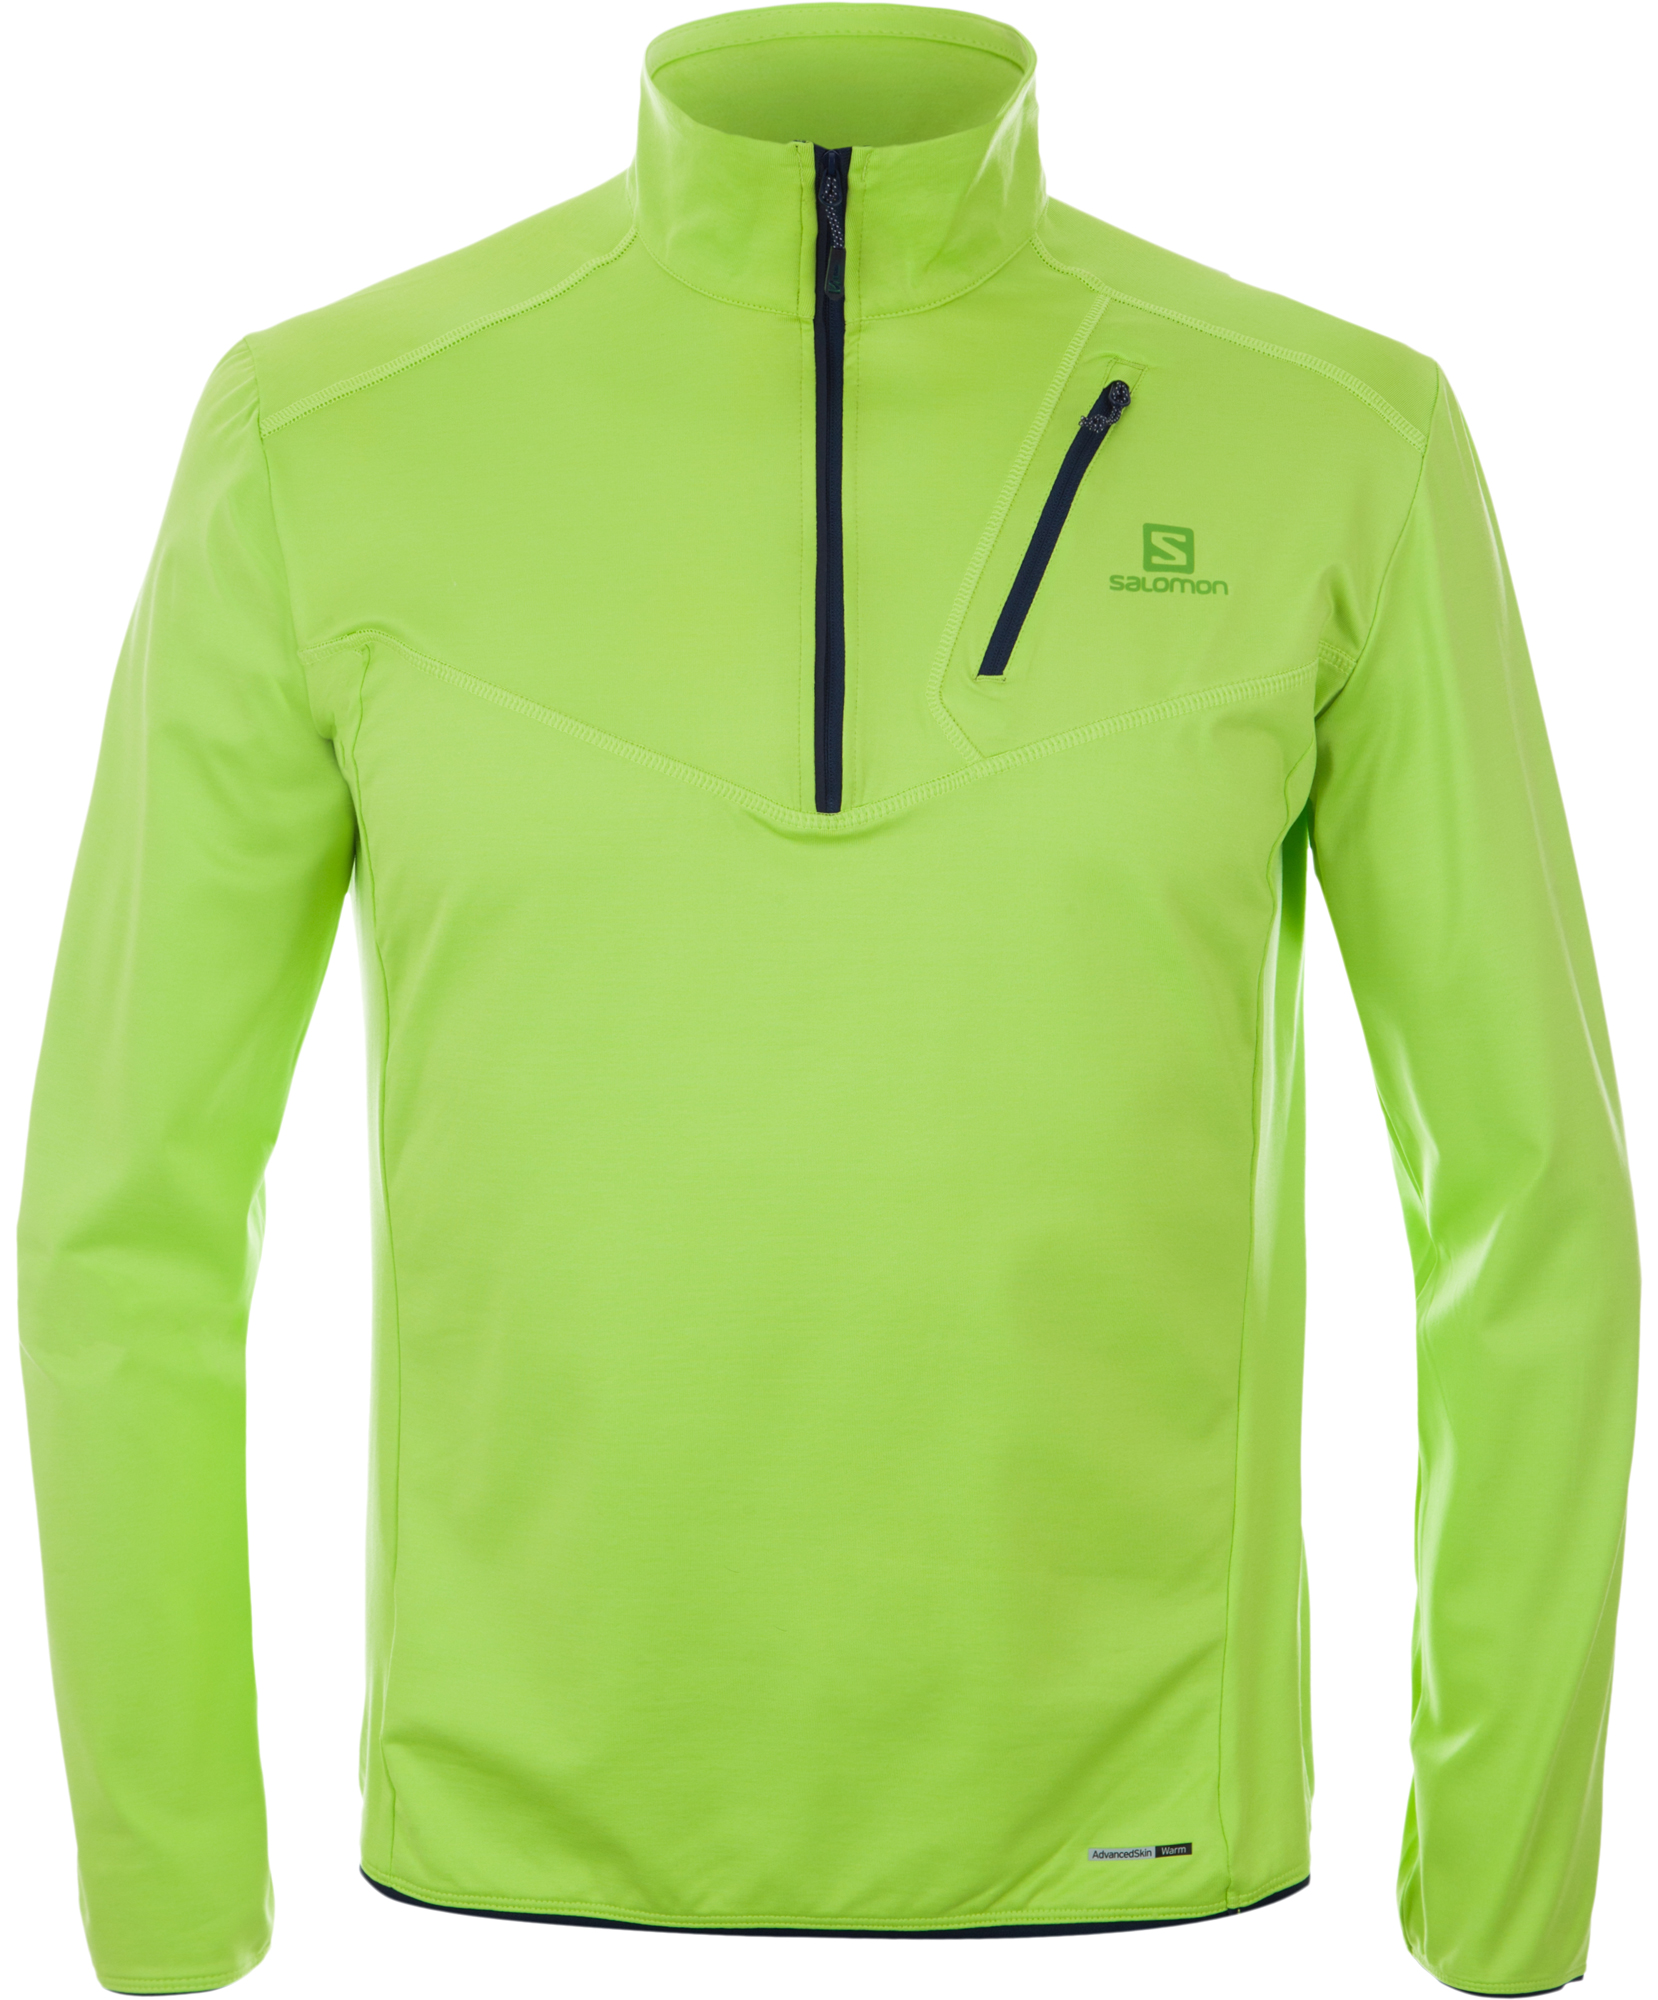 Salomon Джемпер мужской Salomon Discovery salomon discovery hooded midlayer